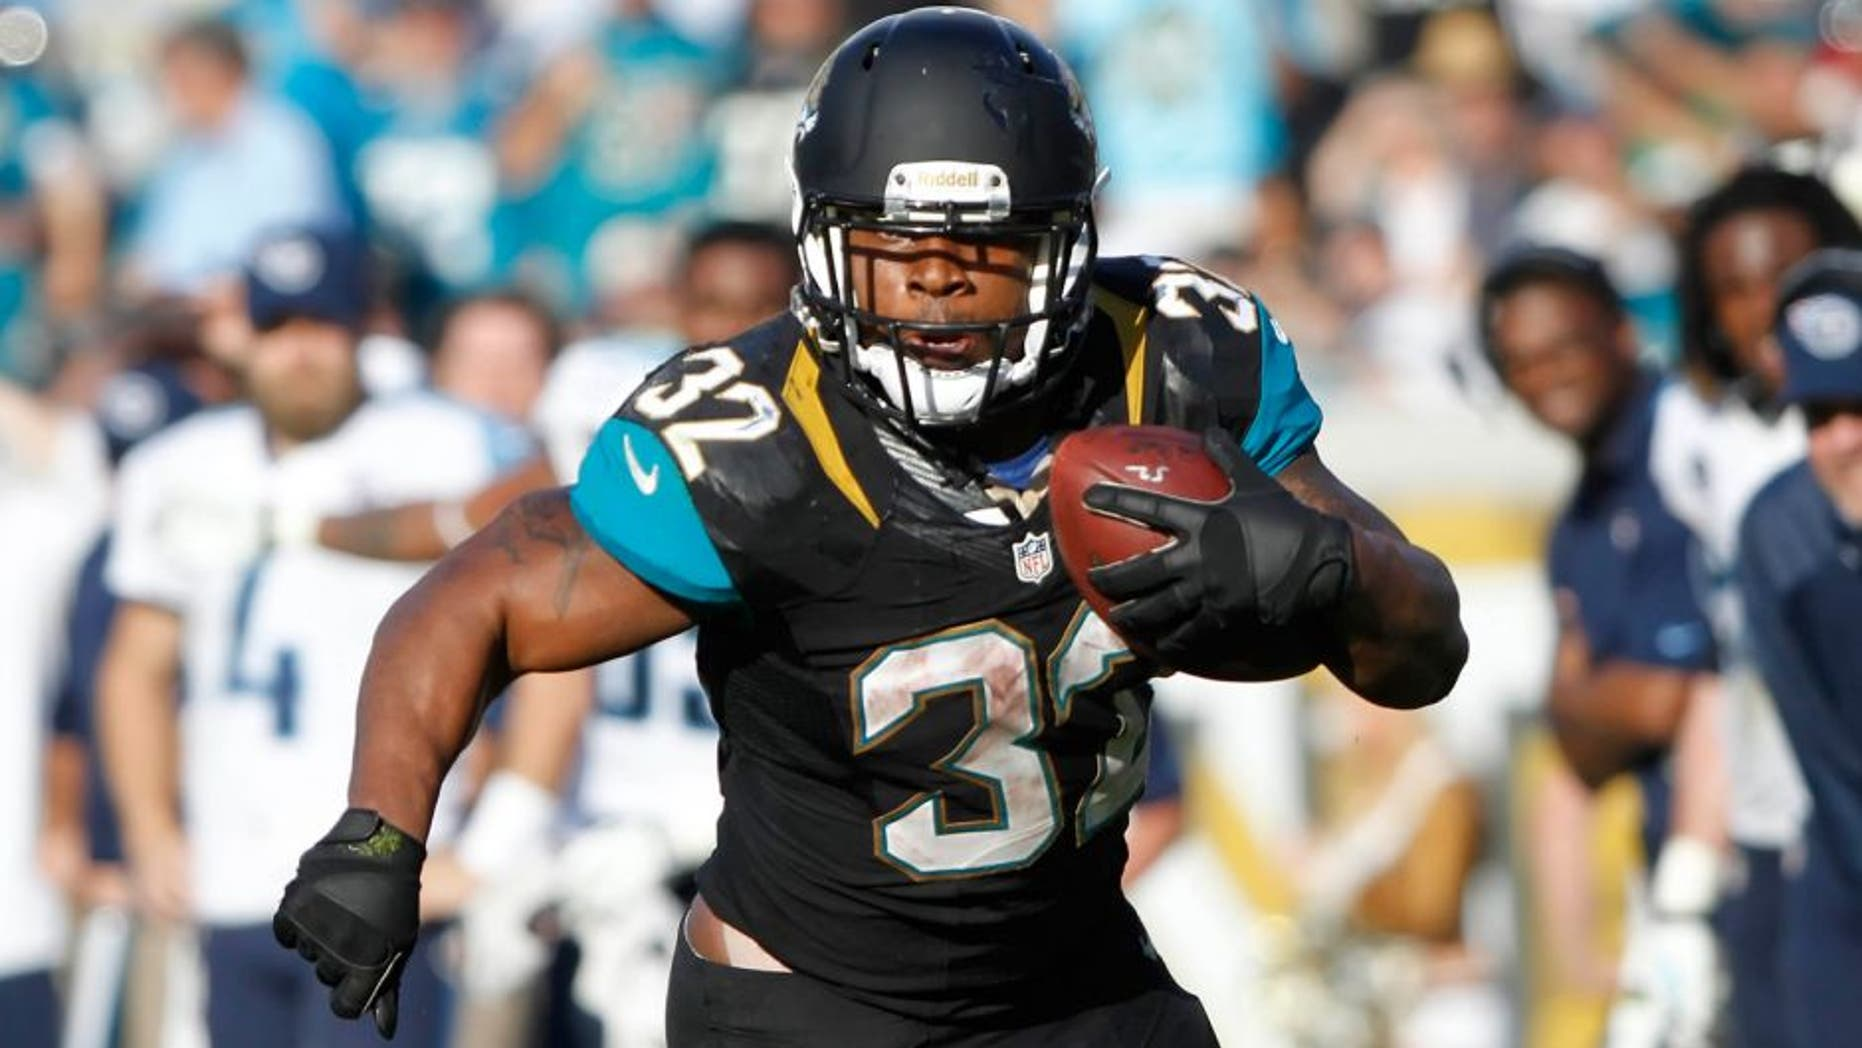 Dec 22, 2013; Jacksonville, FL, USA; Jacksonville Jaguars running back Maurice Jones-Drew (32) runs with the ball as Tennessee Titans defends during the second half at EverBank Field. Tennessee Titans defeated the Jacksonville Jaguars 20-16. Mandatory Credit: Kim Klement-USA TODAY Sports